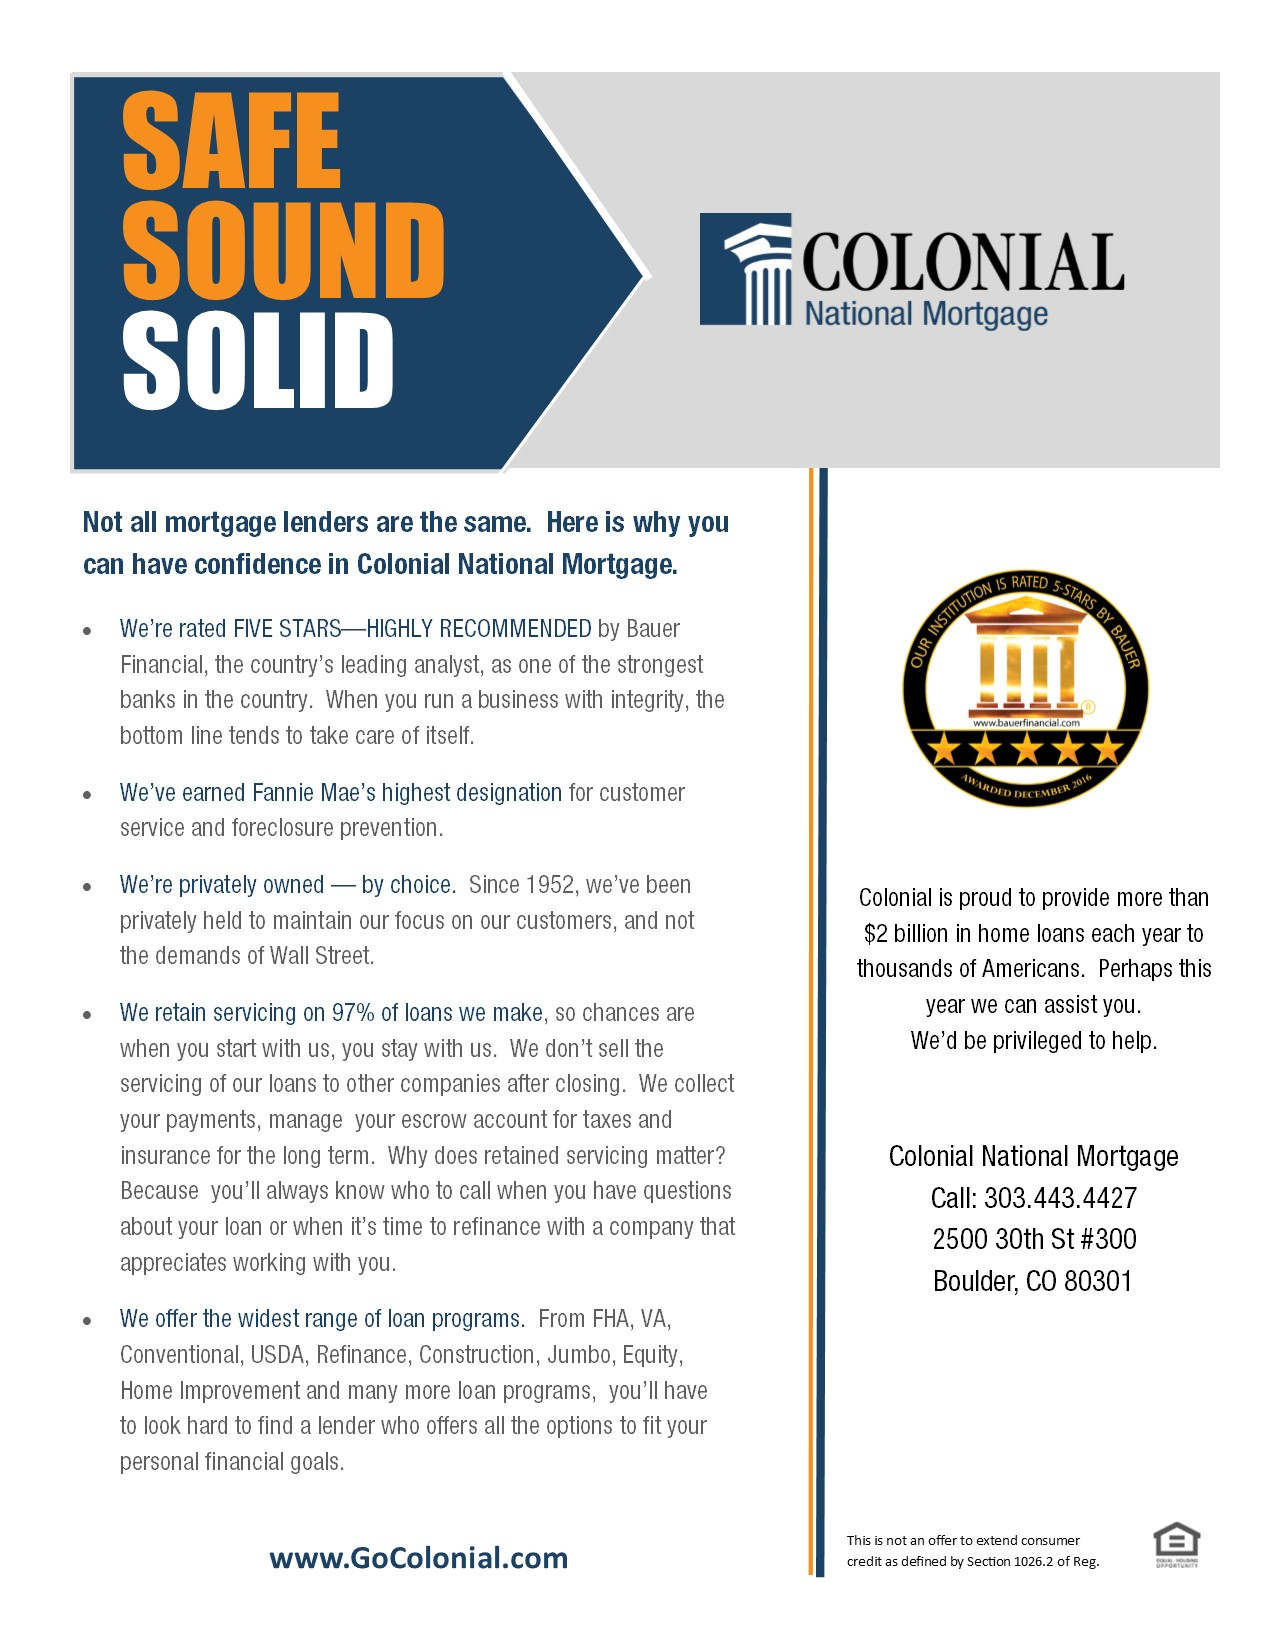 Colonial National Mortgage image 5